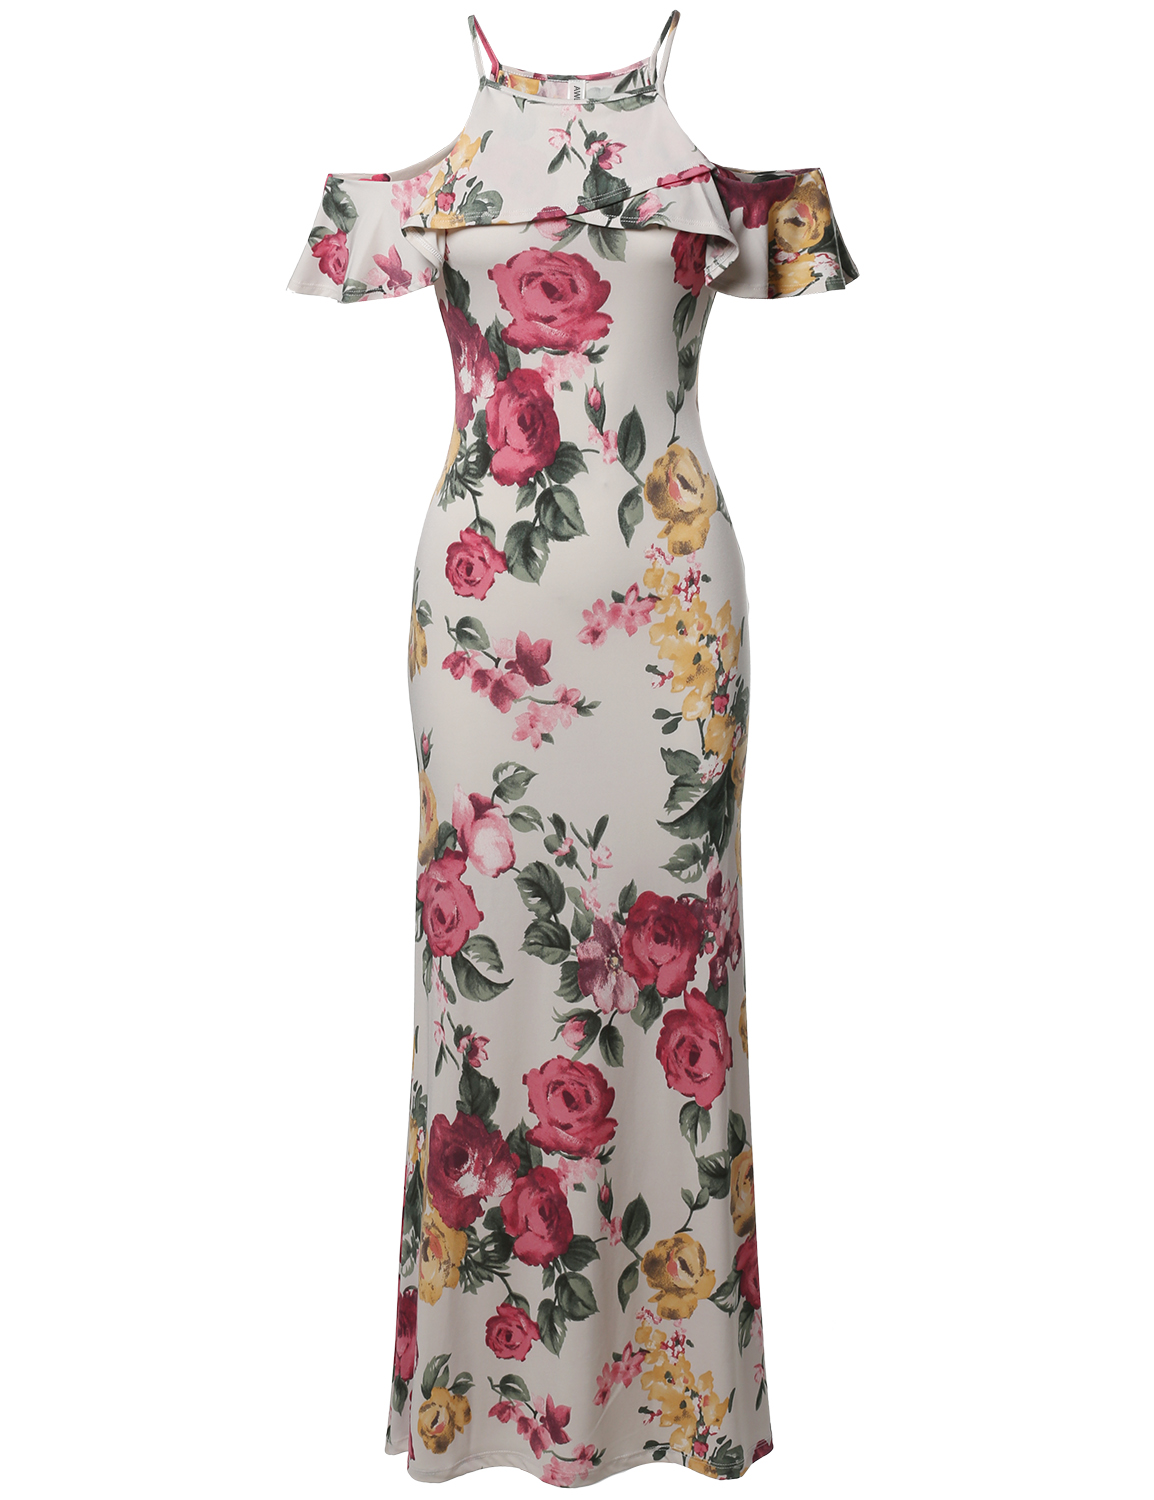 FashionOutfit Beach Wedding Guest Floral Ruffle Sleeve Maxi Dress Made In USA